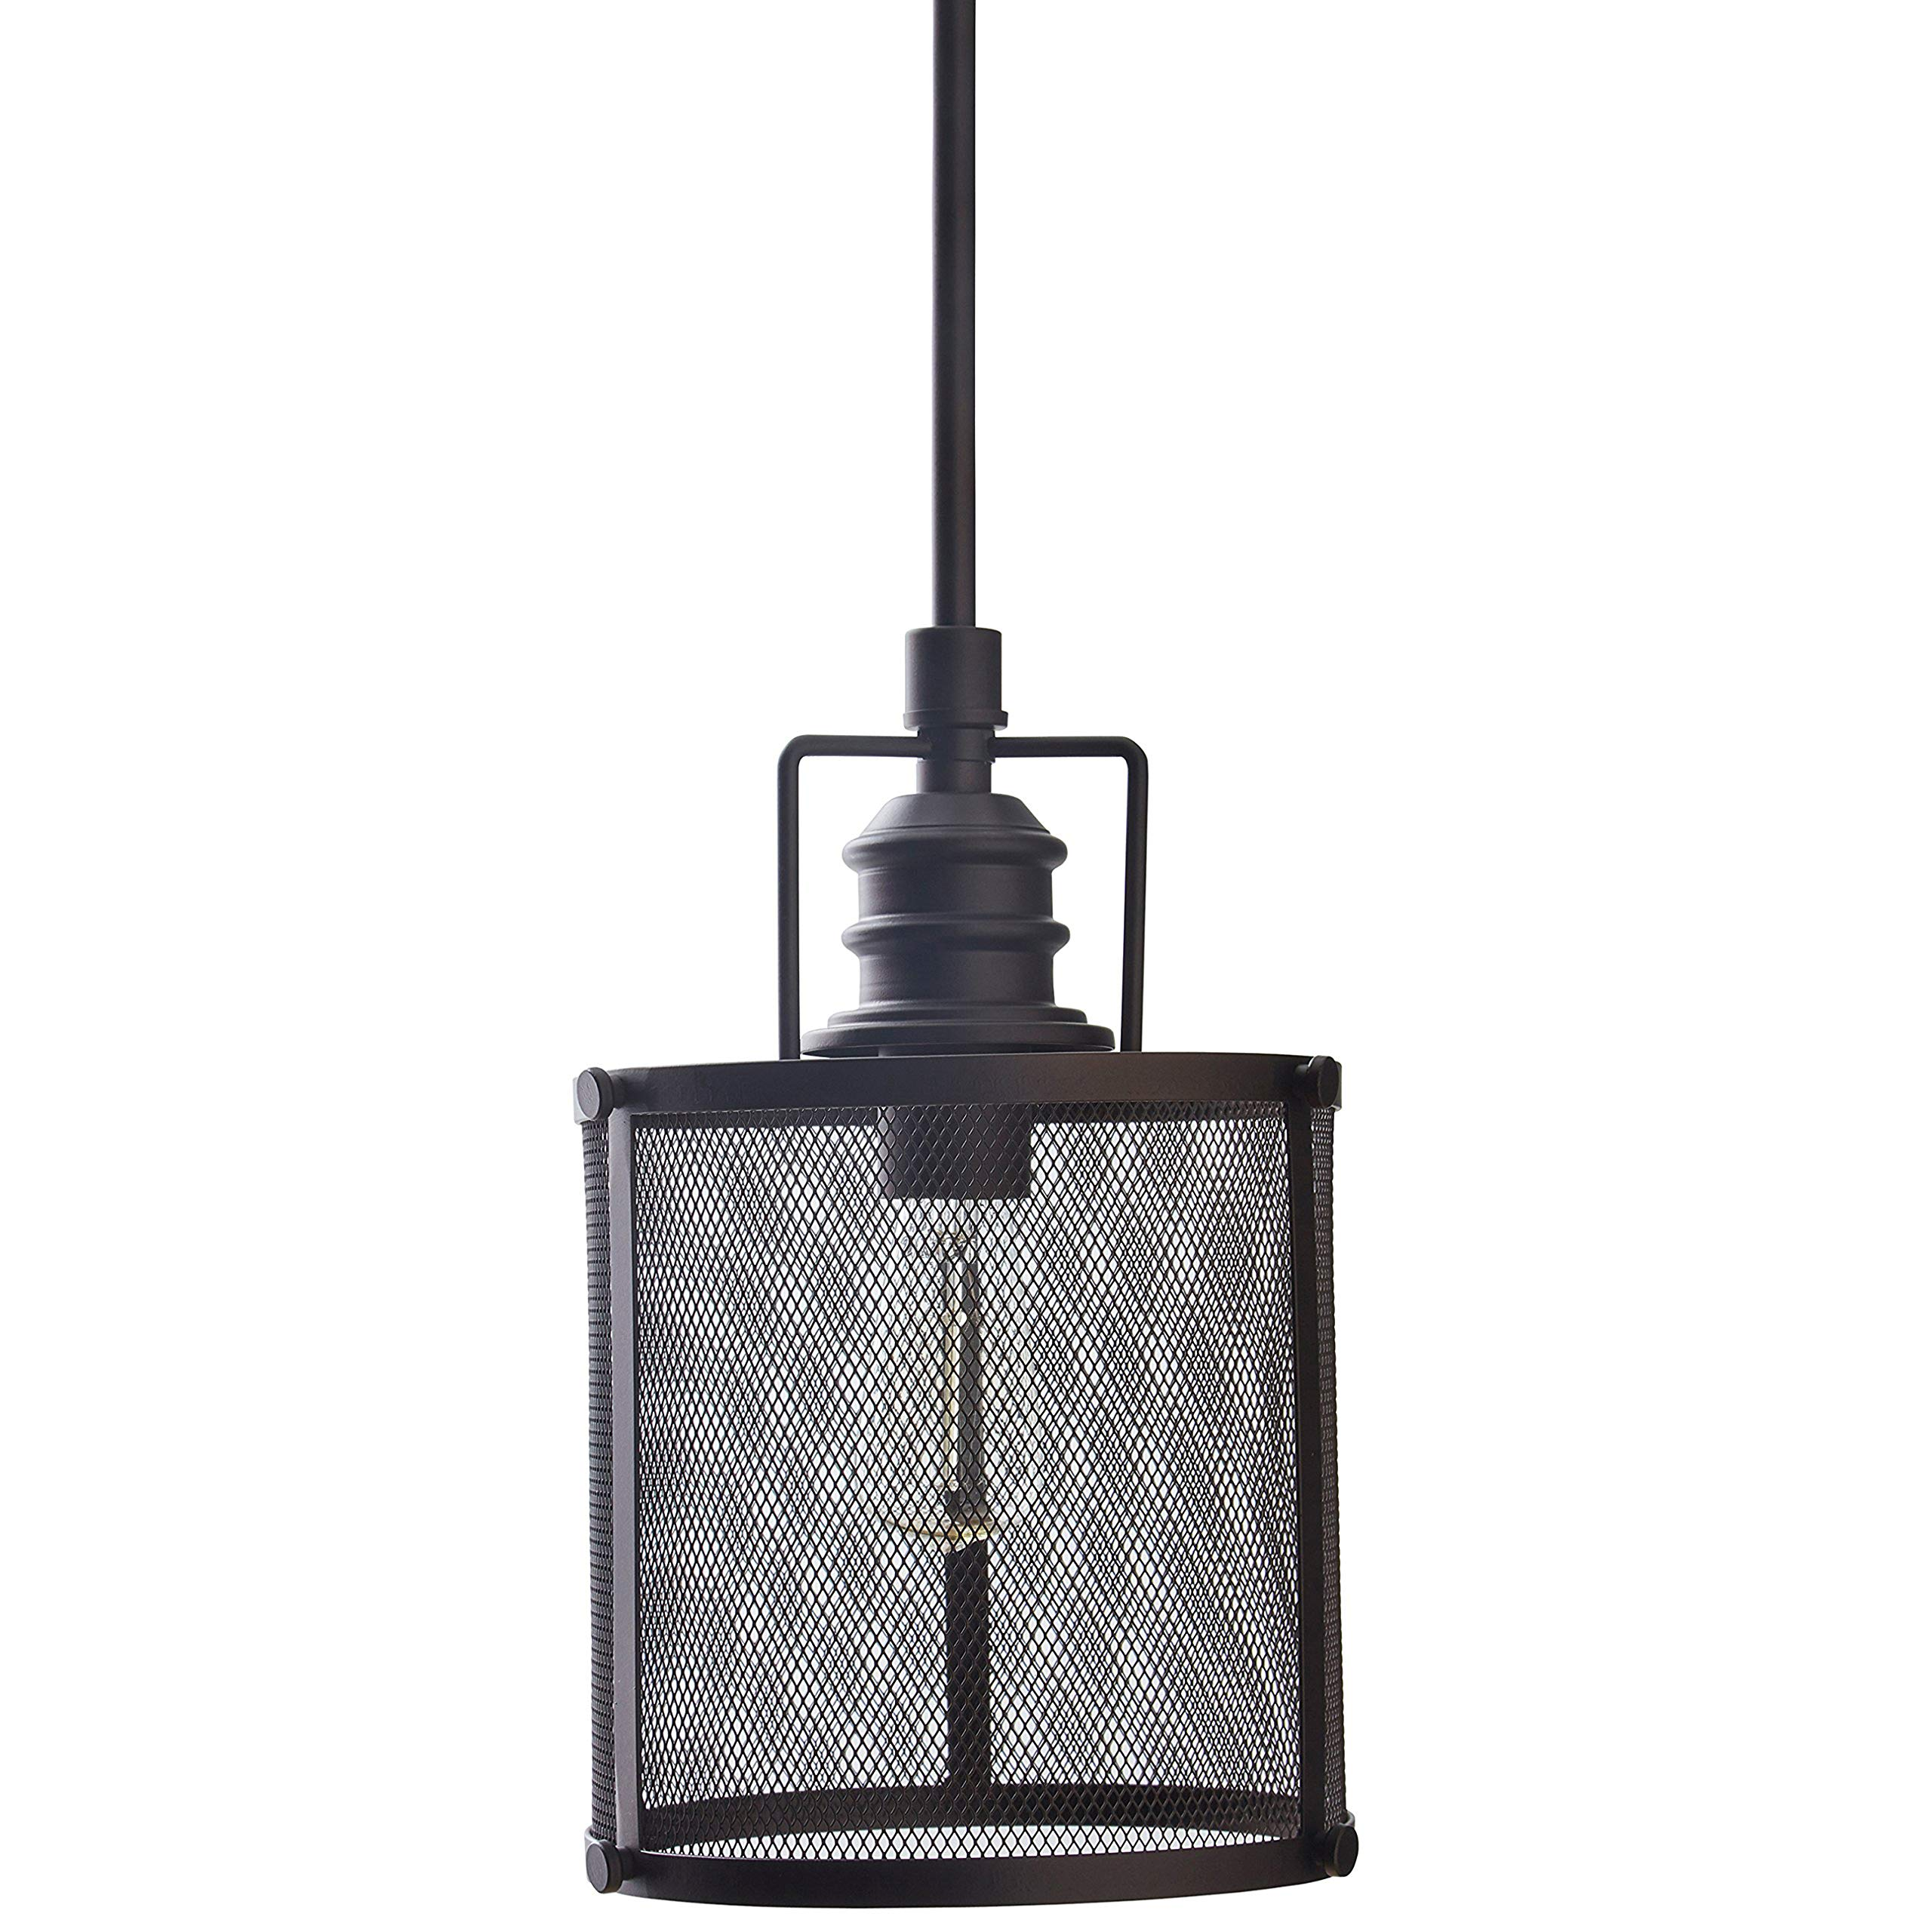 Stone & Beam Hobbs Mesh Cage Pendant Ceiling Chandelier Fixture With Light Bulb - 7.75 Inch Shade, 20.5 - 60.5 Inch Cord, Oil-Rubbed Bronze